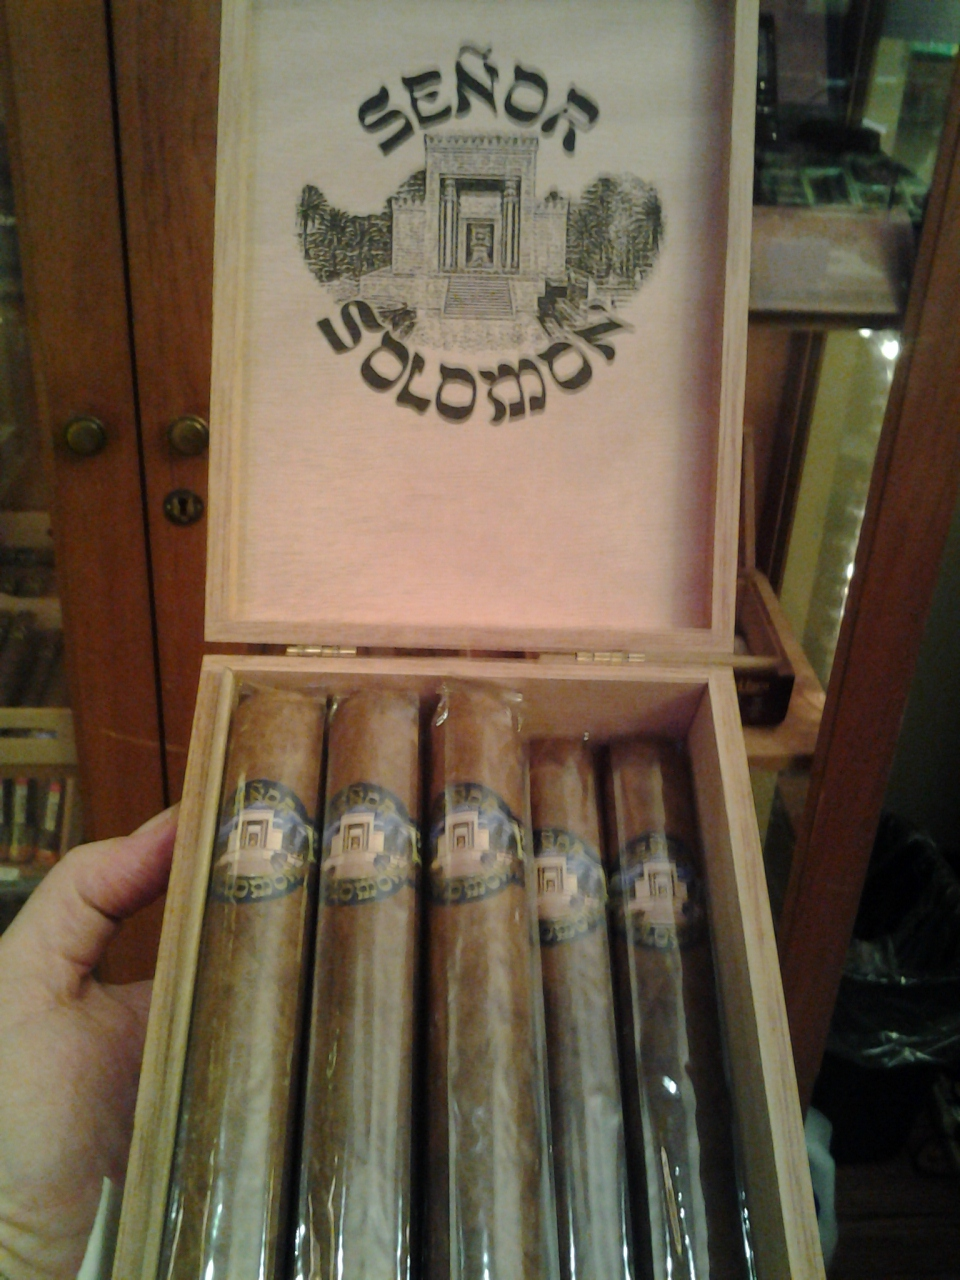 Shlomo and Israel's fave Kosher cigar